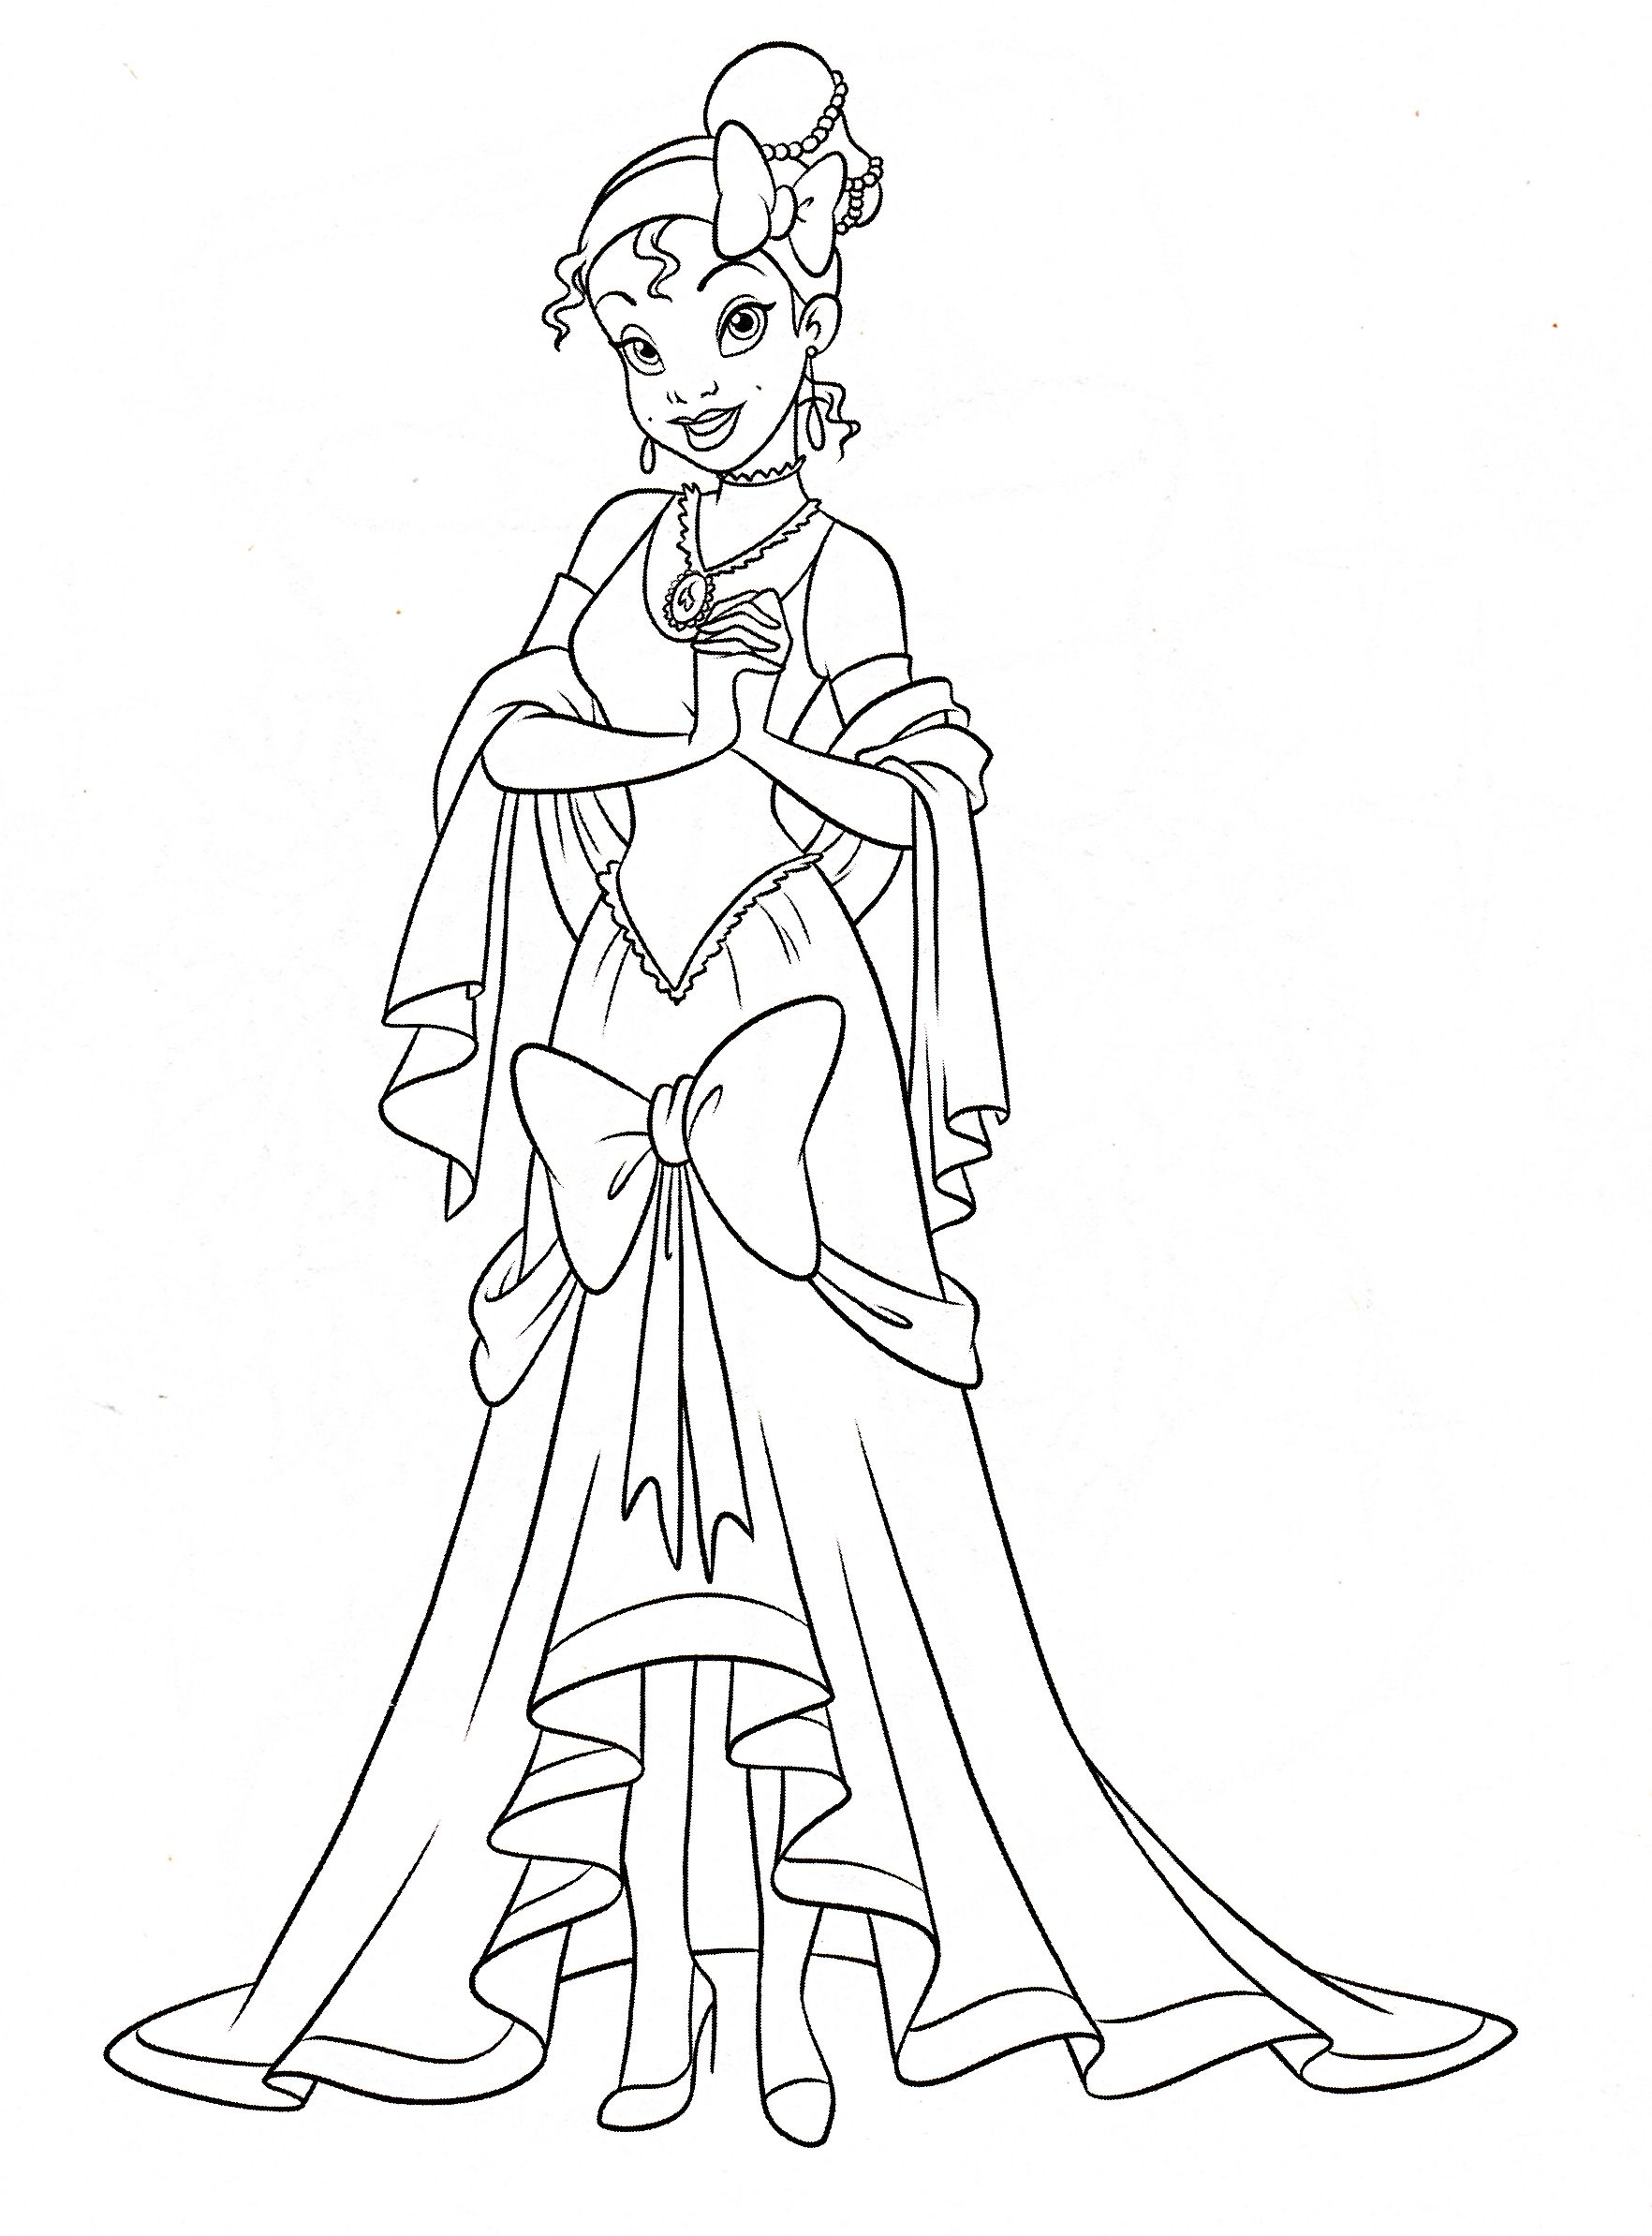 Walt Disney Coloring Page Of Princess Tiana From The And Frog HD Wallpaper Background Photos Pages